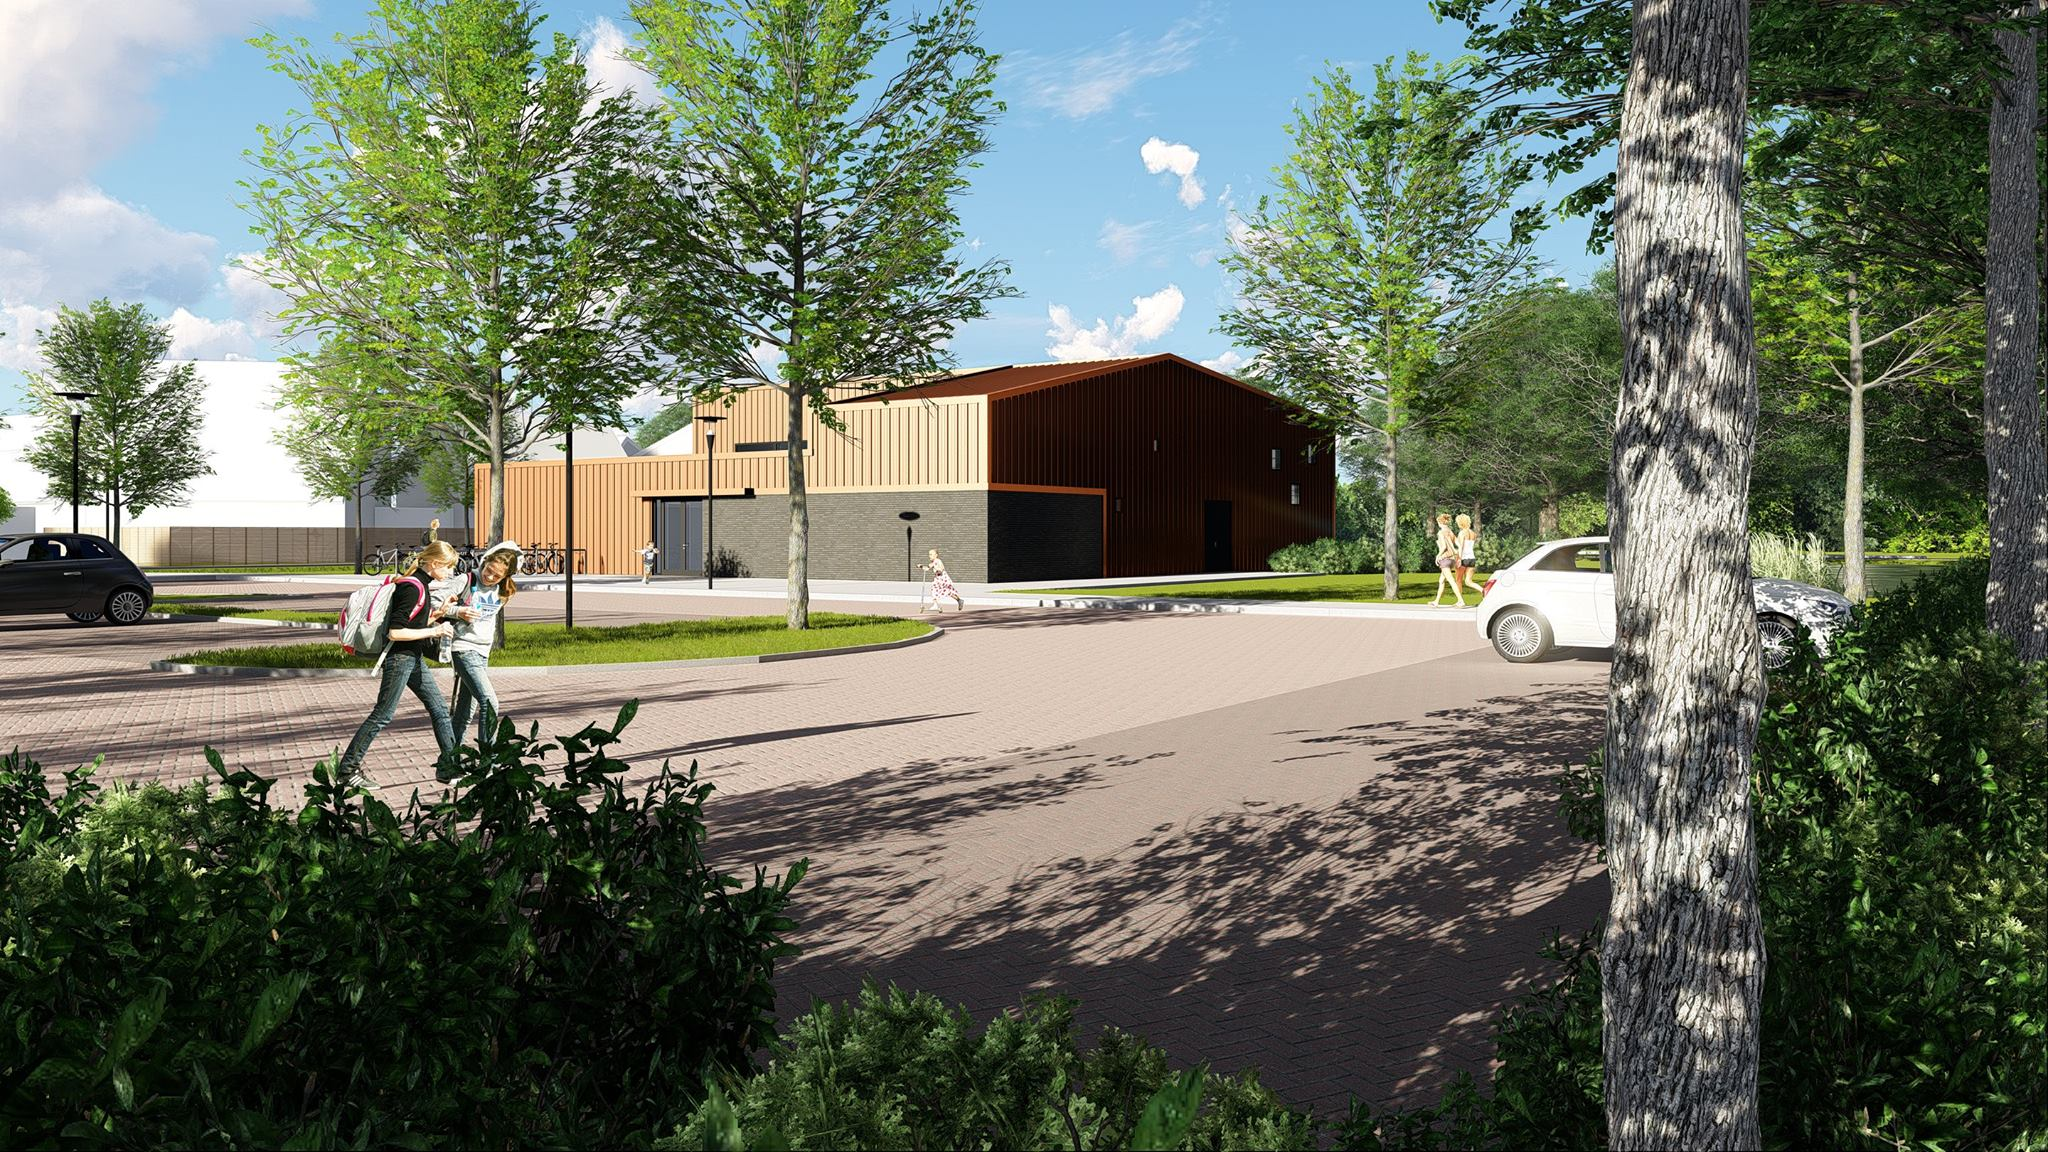 Design & build sporthal De Waring Drachten